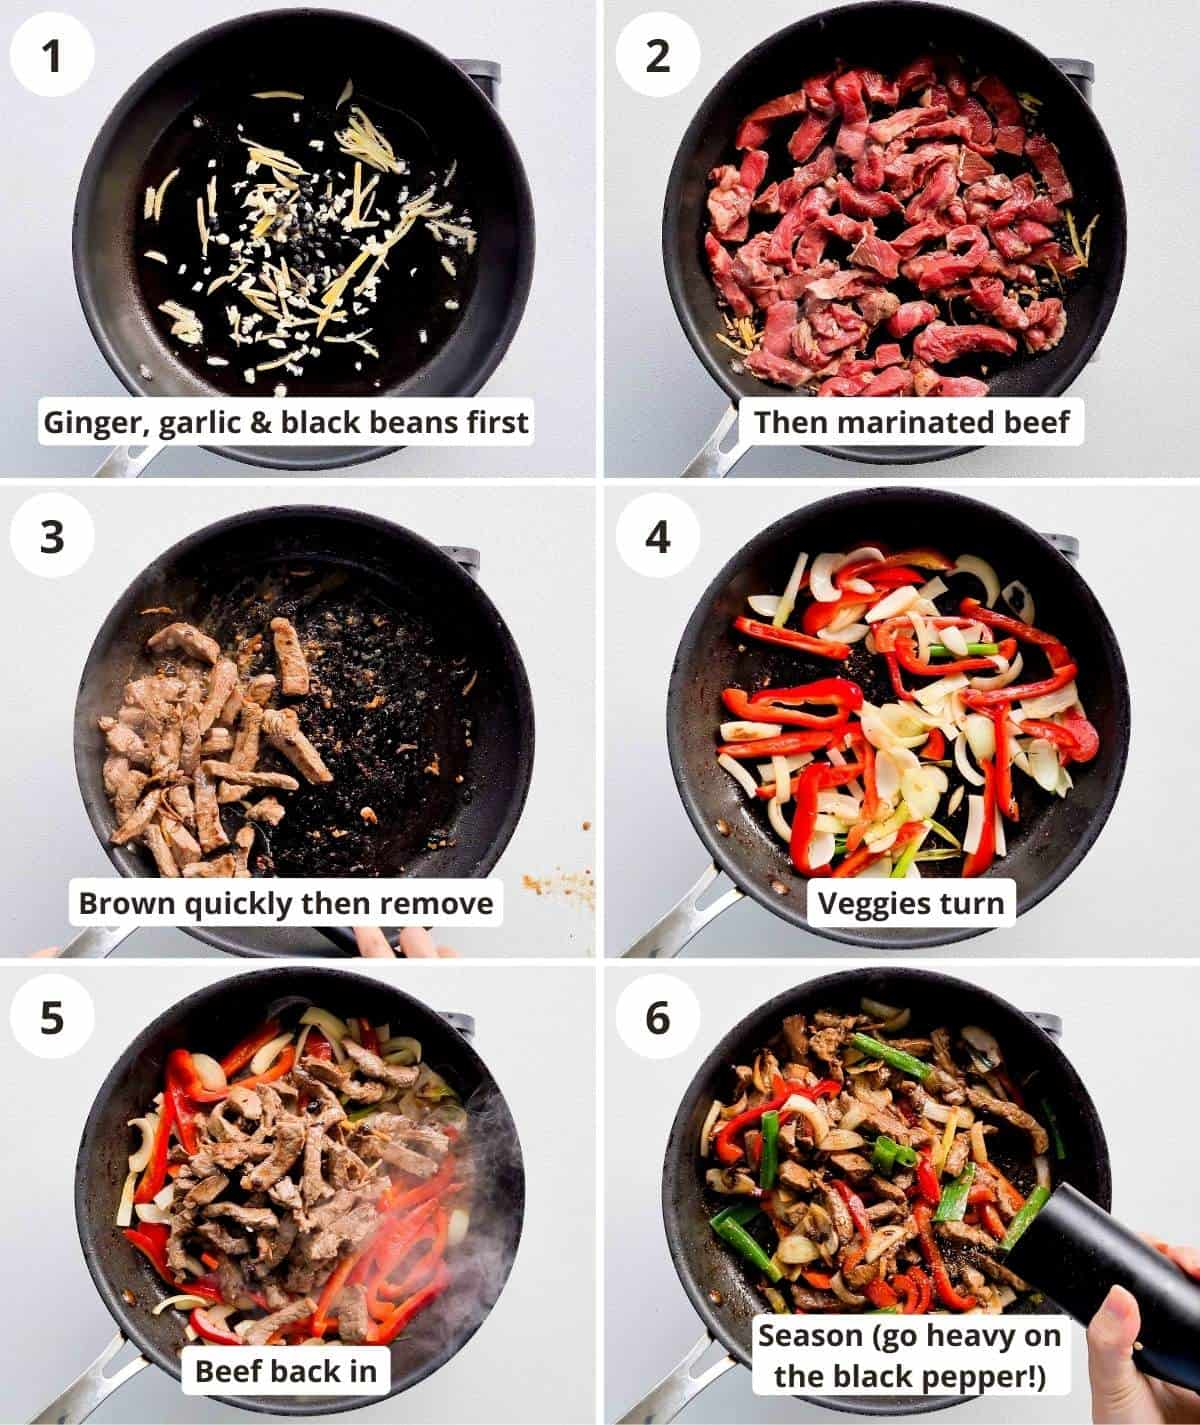 Step by step instructions for cooking this recipe with captions